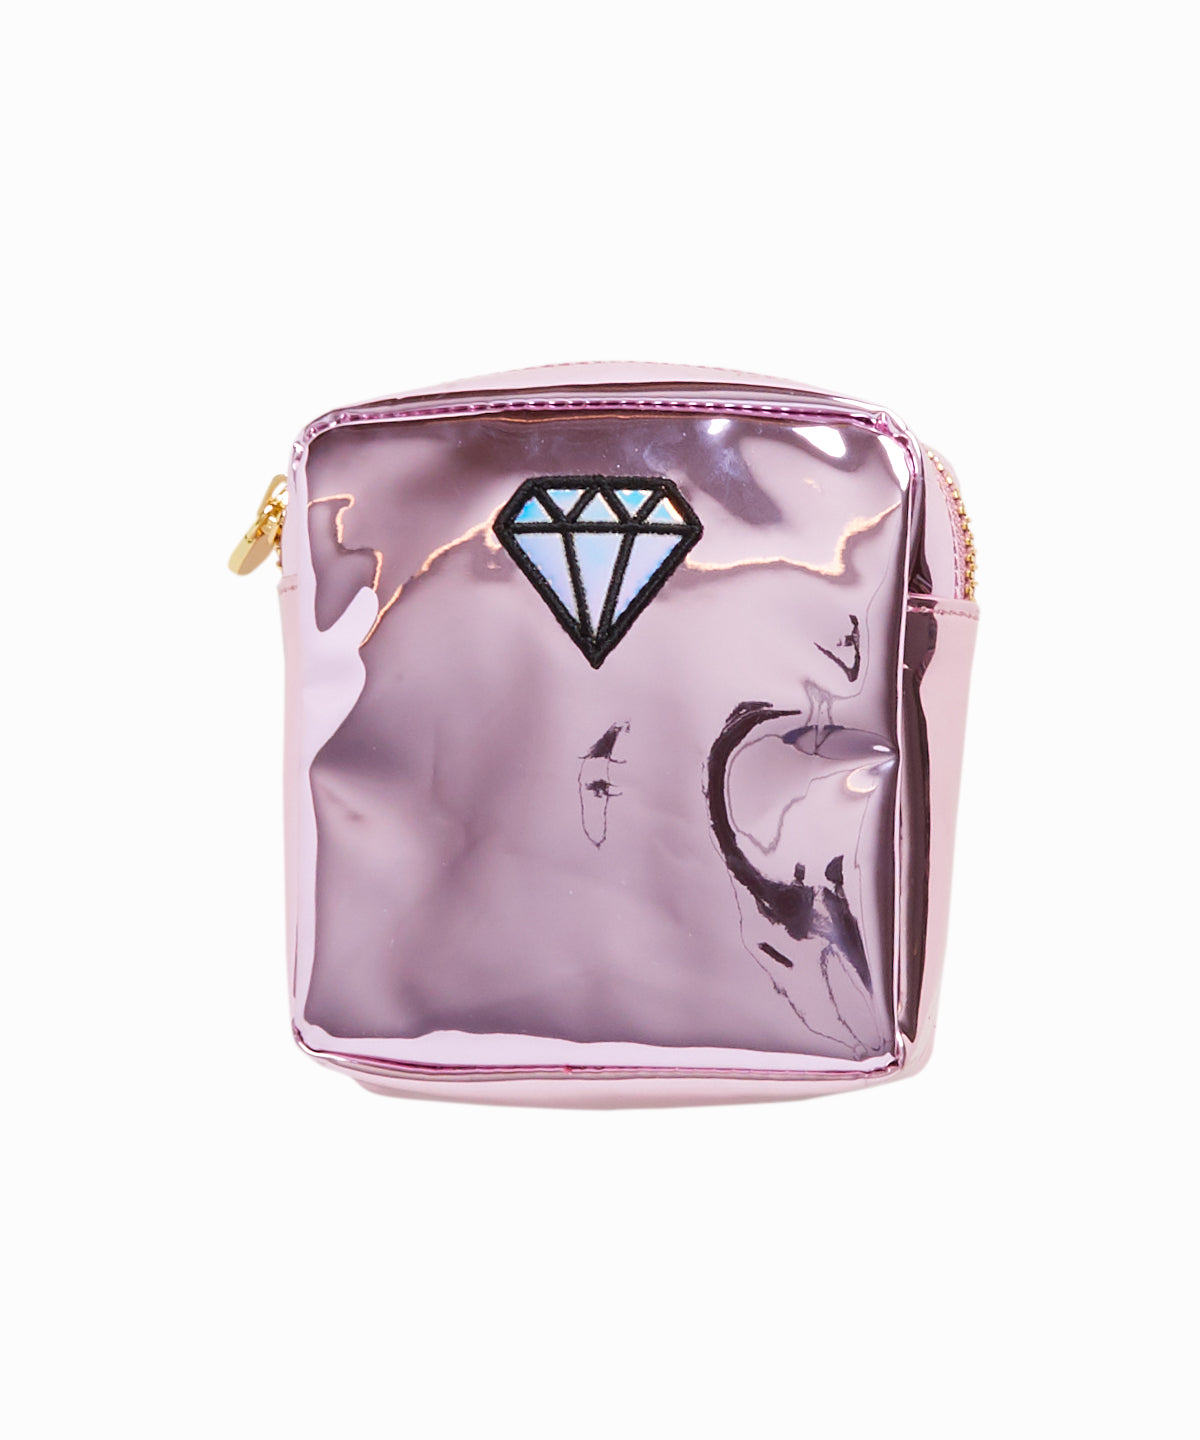 Diamond Patch Patent Leather Mini Pouch